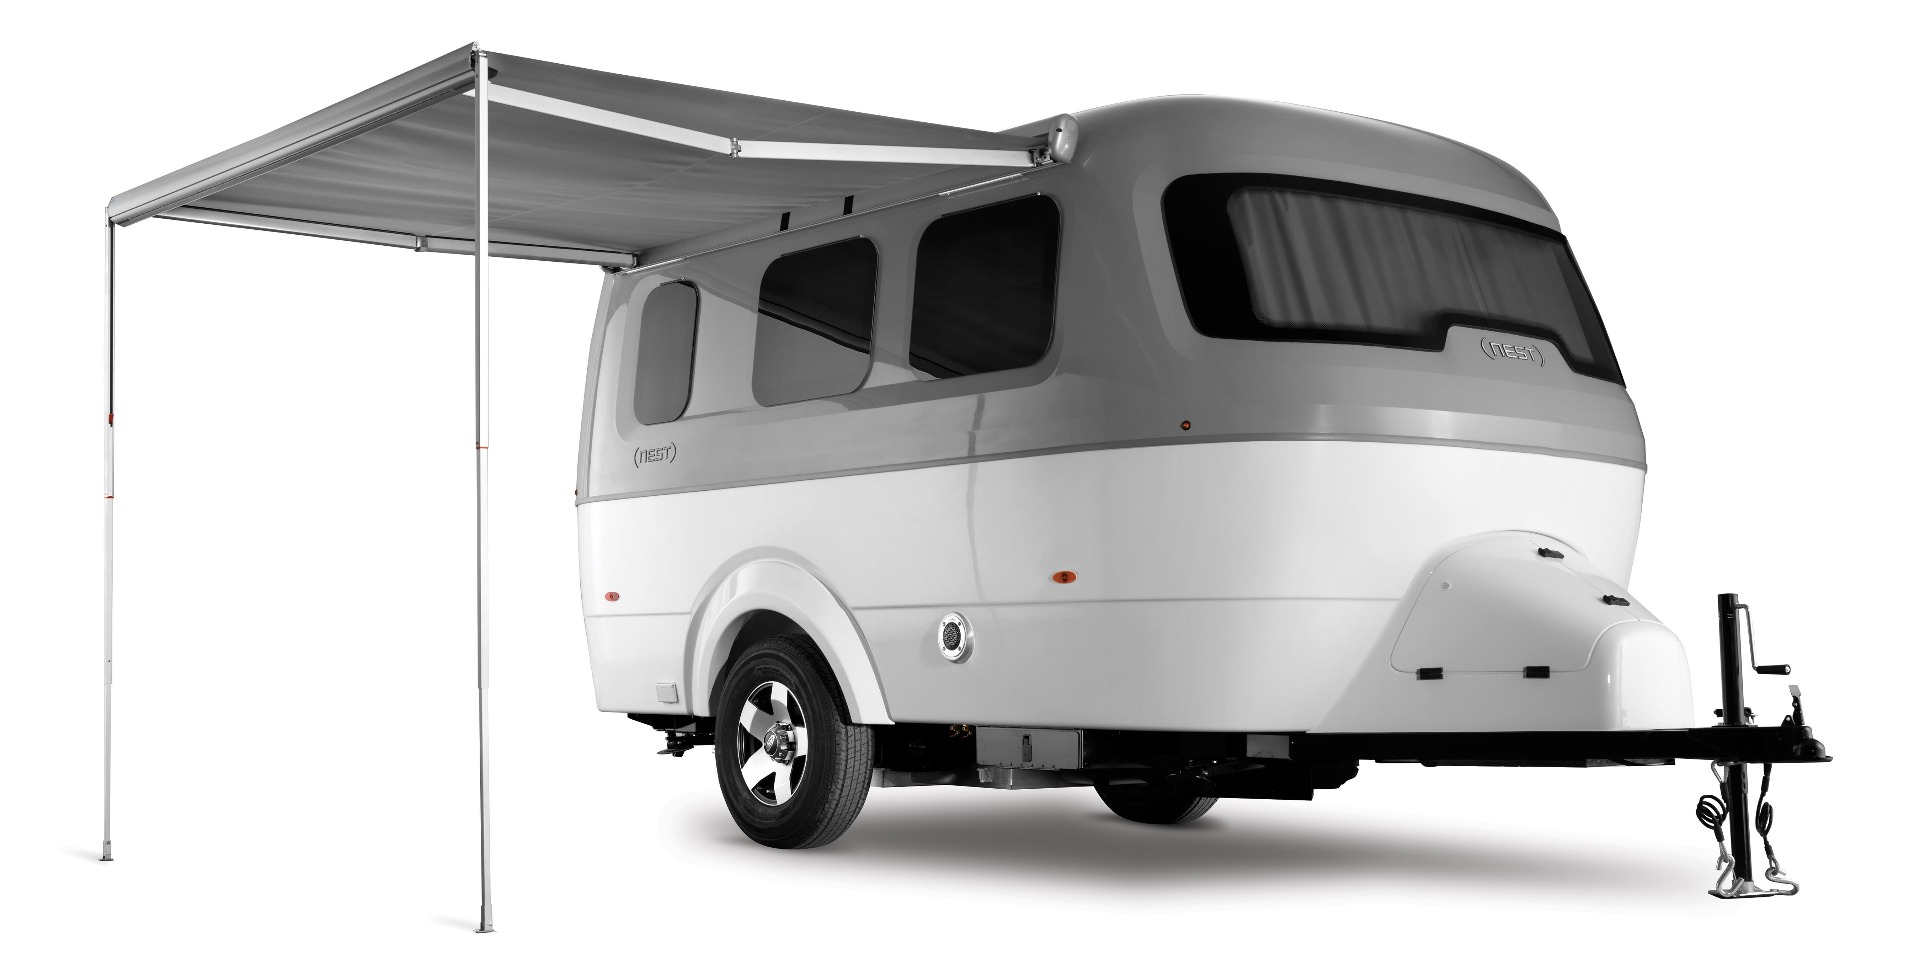 Airstream sheds its aluminum shell with the Nest fiberglass glamper